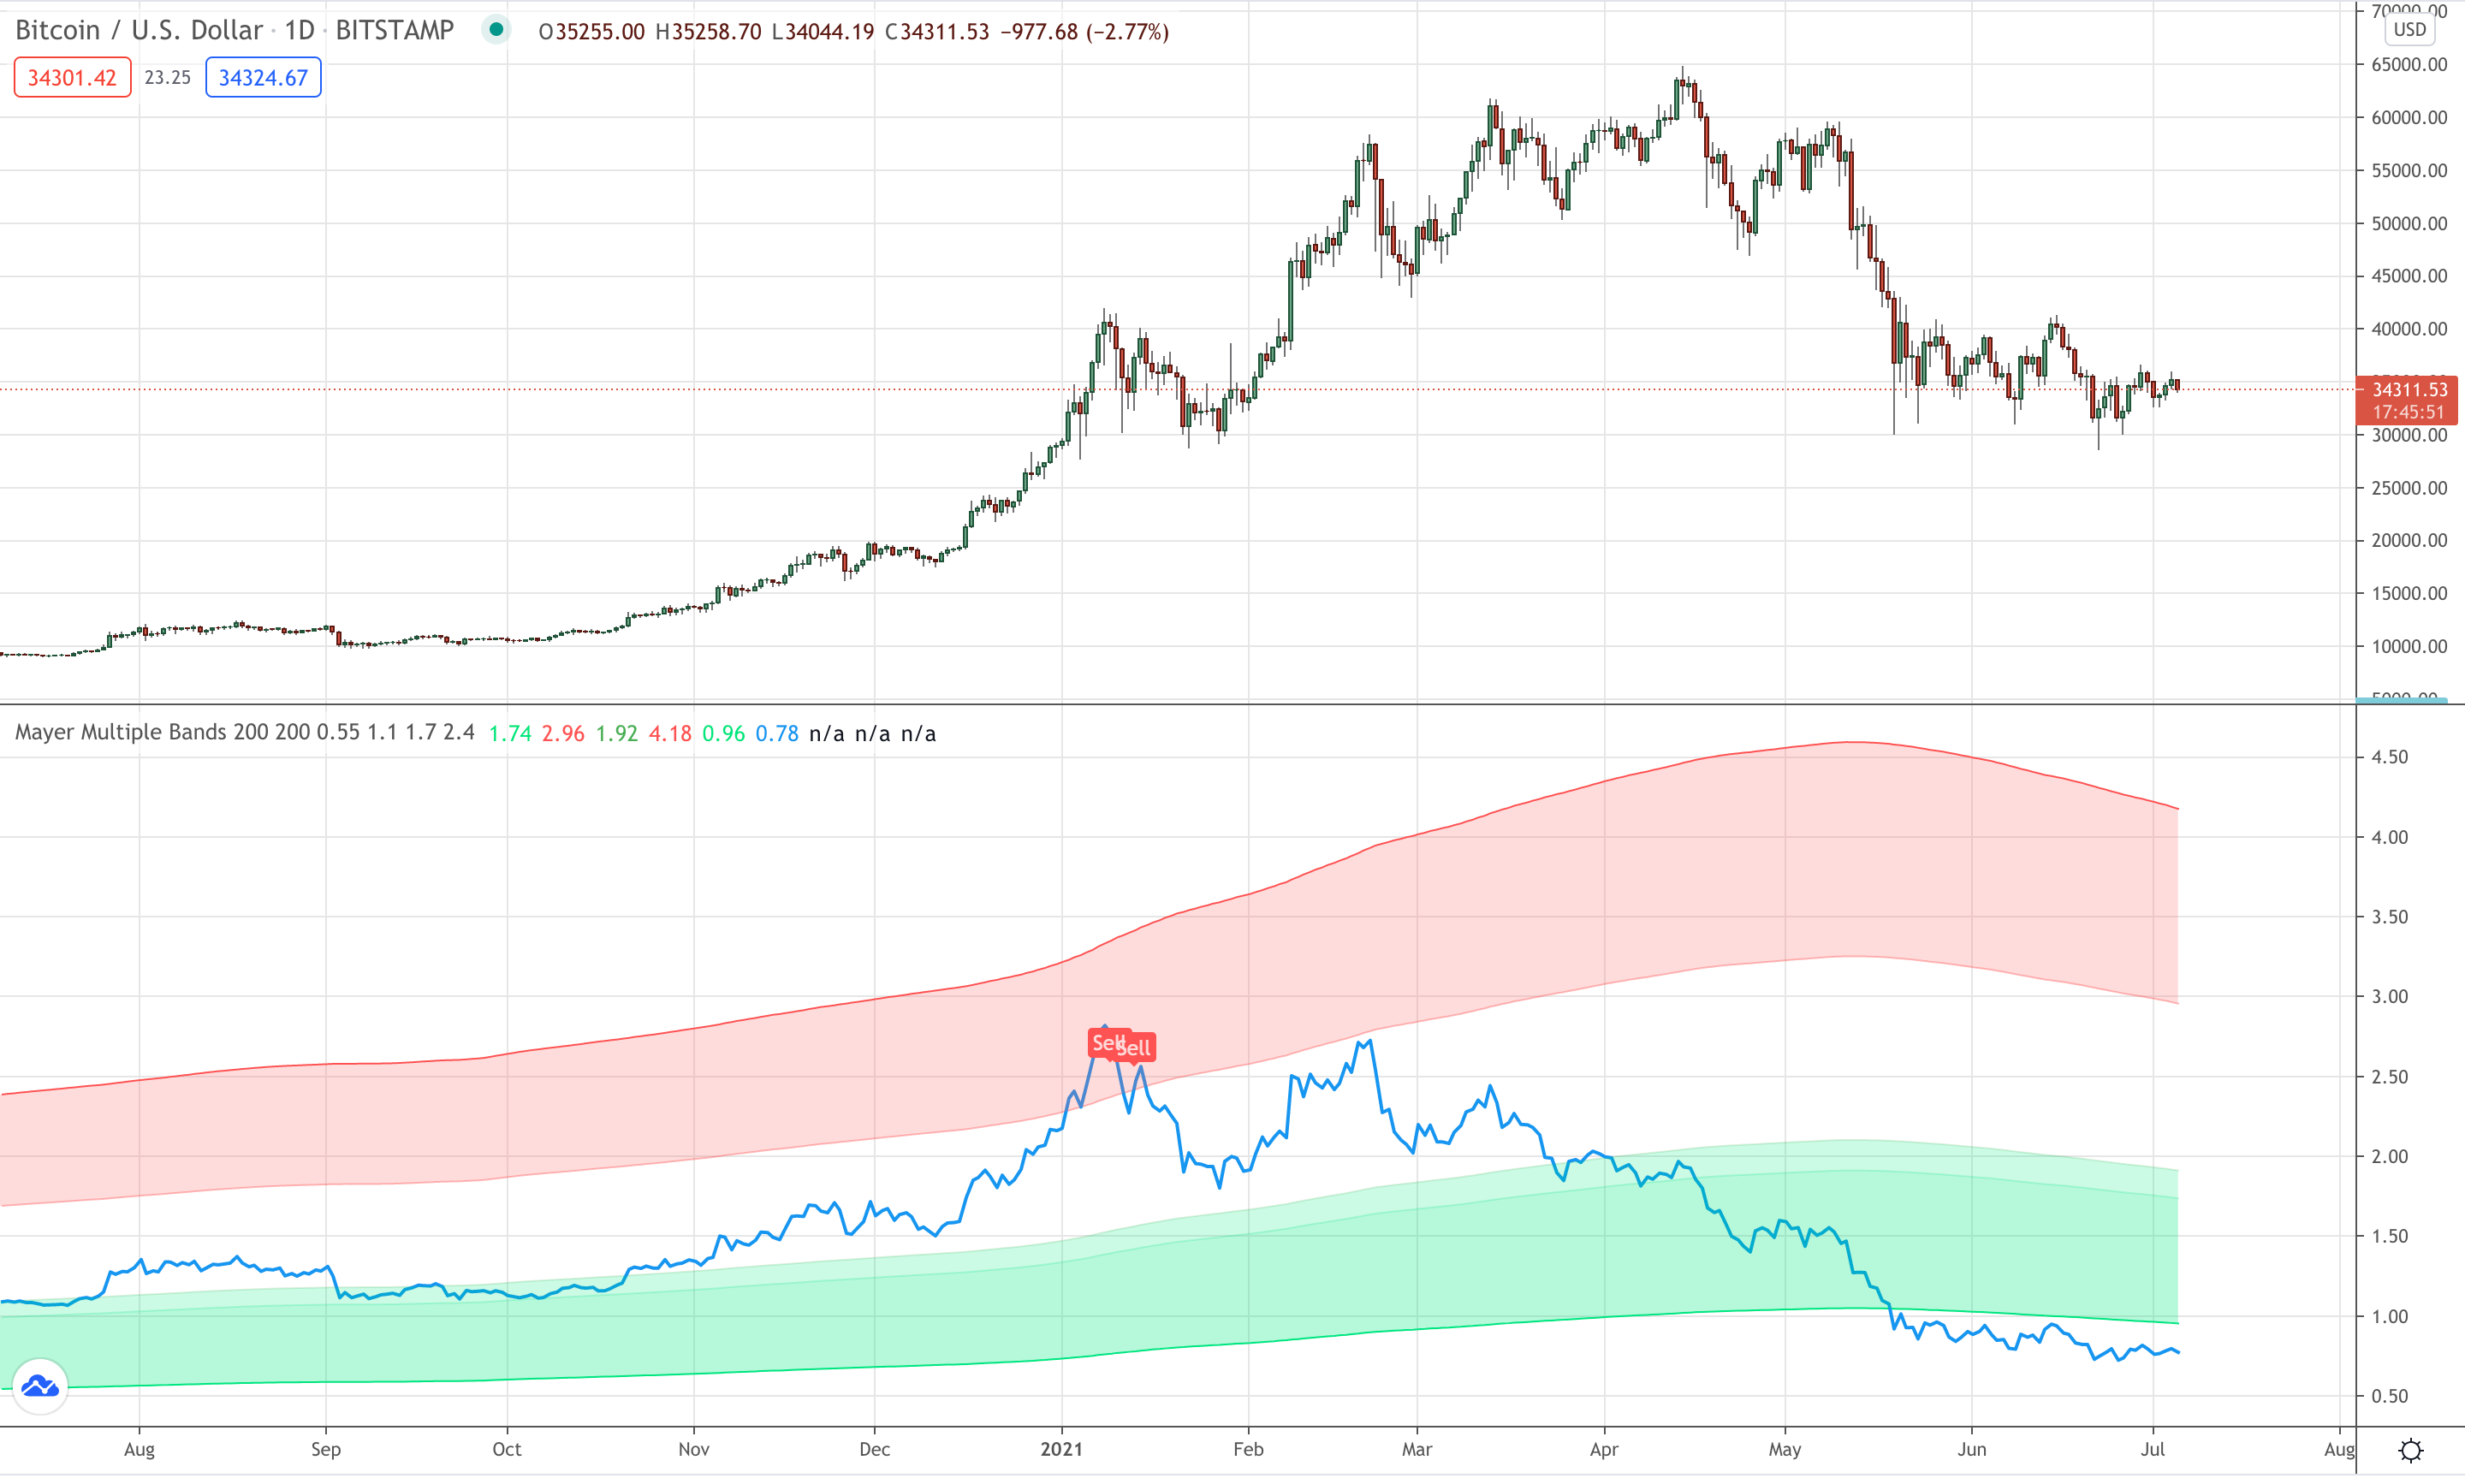 Mayer Multiple Price Bands on my Bitcoin chart.